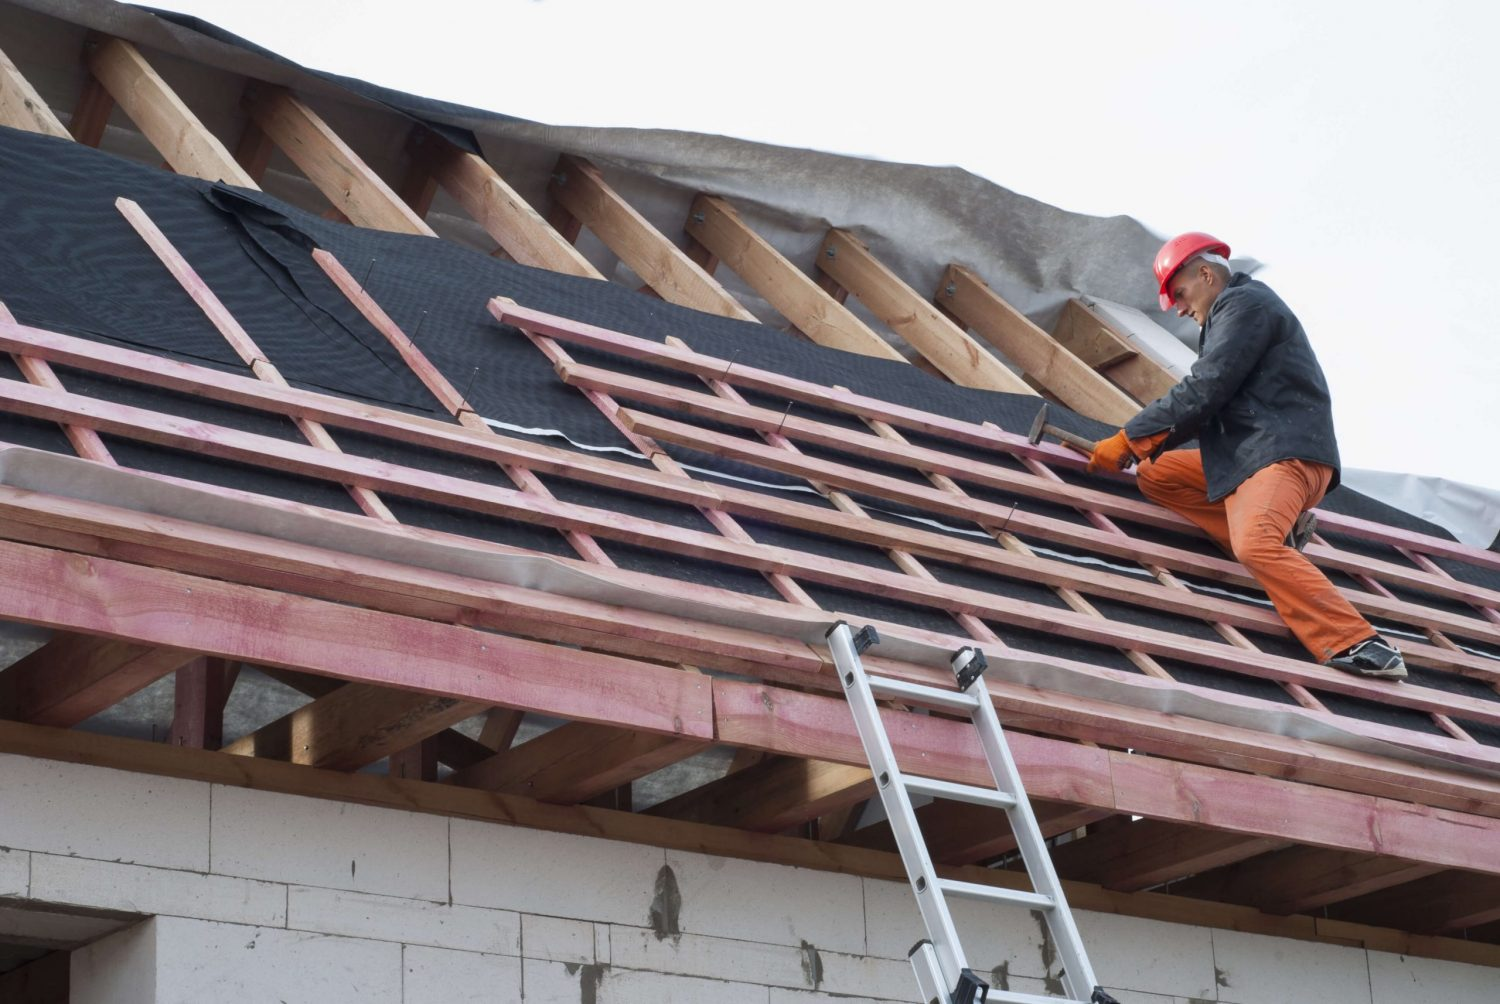 Full roof restoration services. Roofer working on wood roof deck.